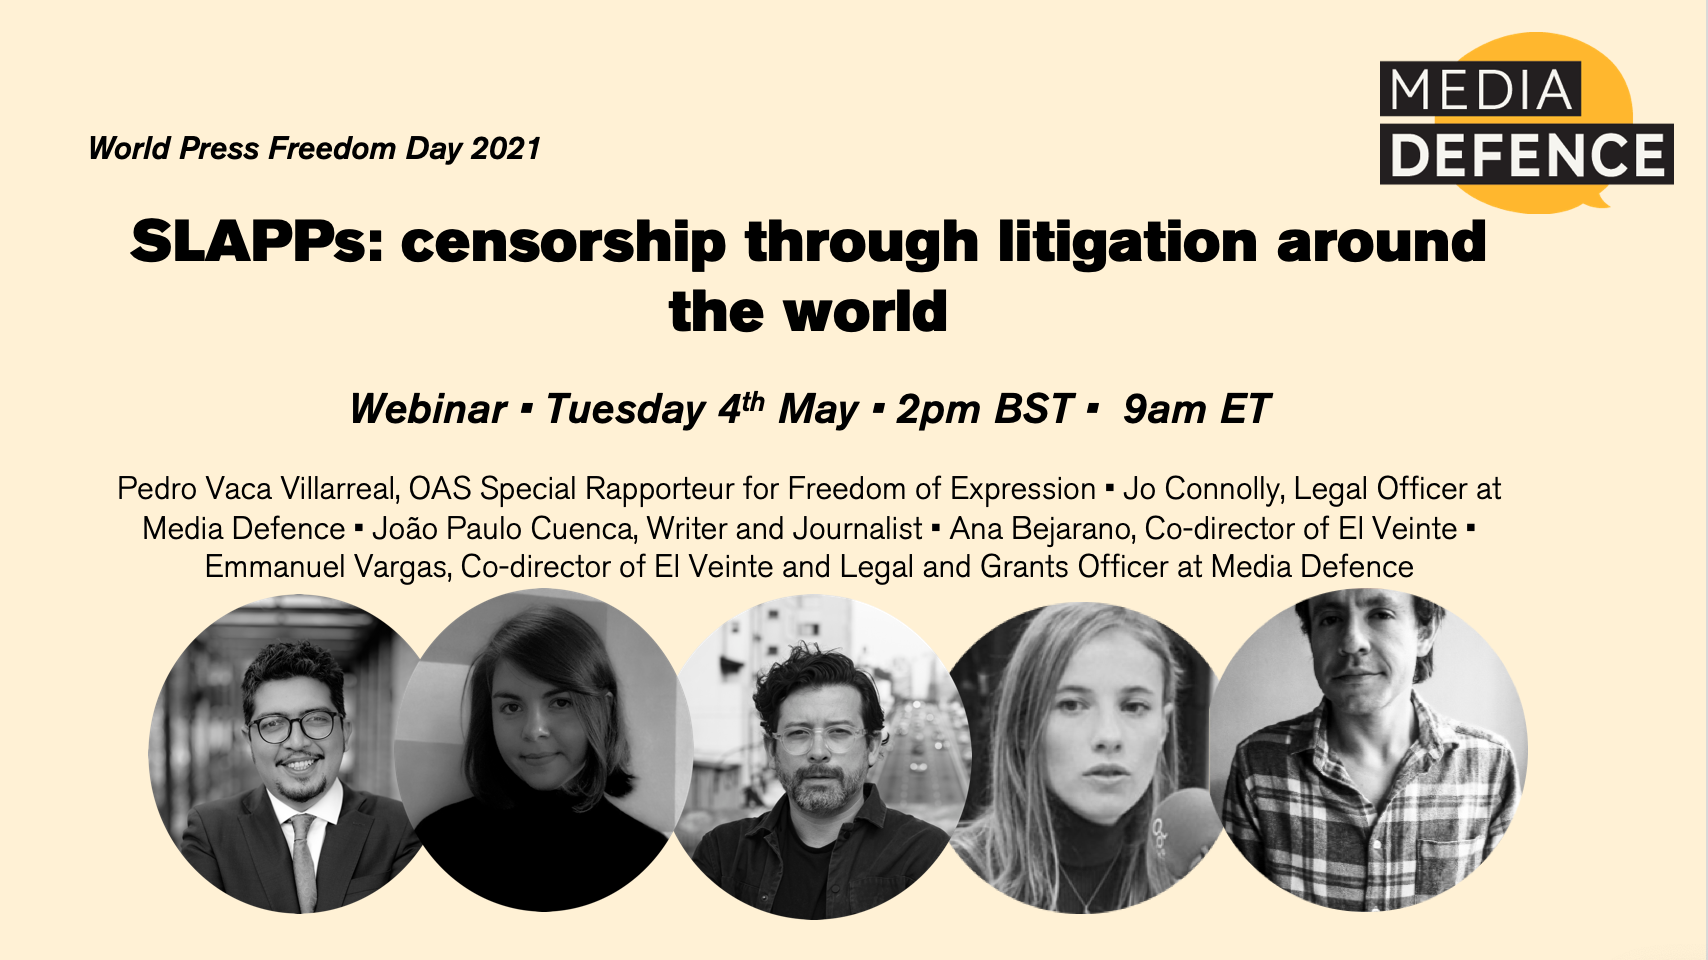 World Press Freedom Day 2021: Watch Media Defence's Webinar on SLAPPs